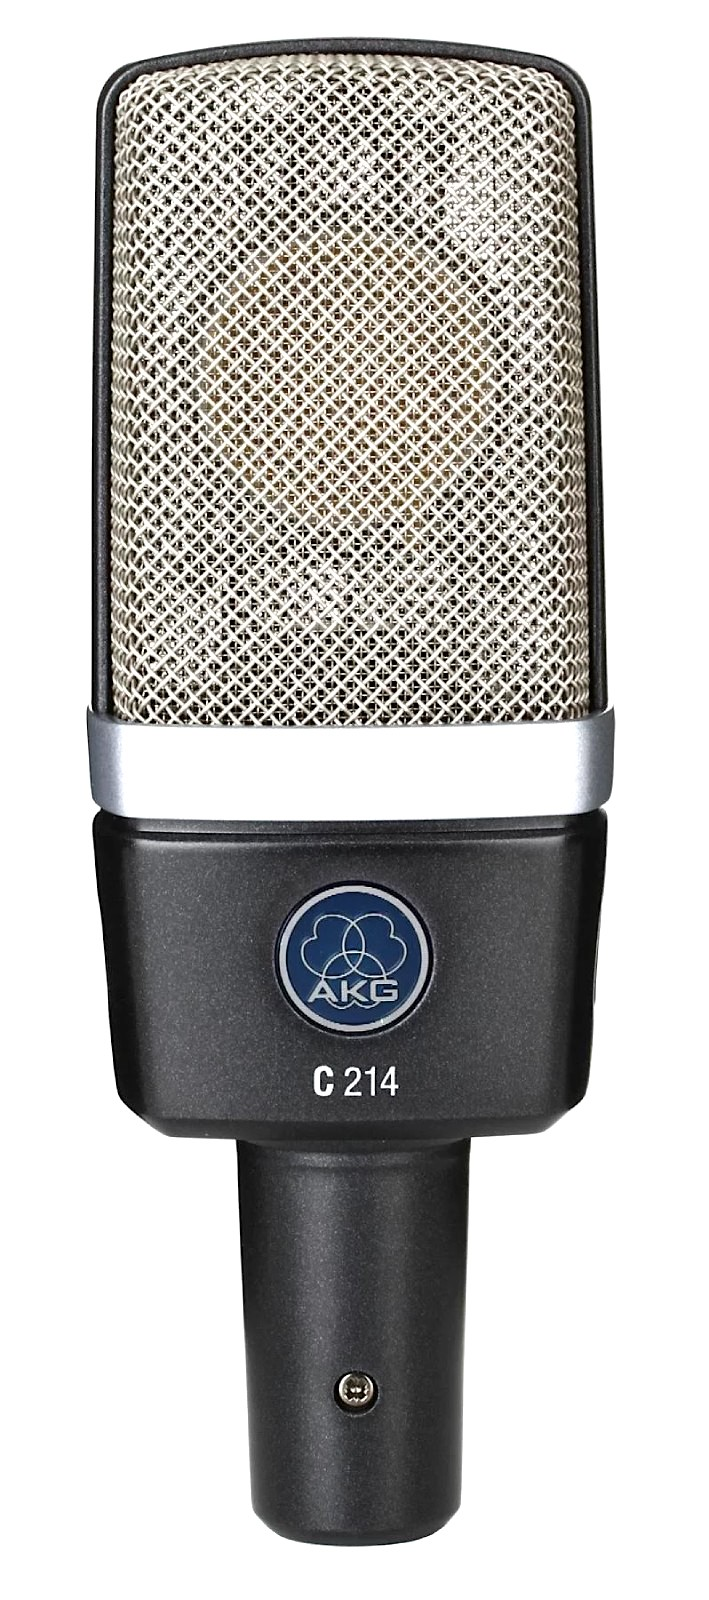 AKG C 214 - Microfoni a condensatore entry level